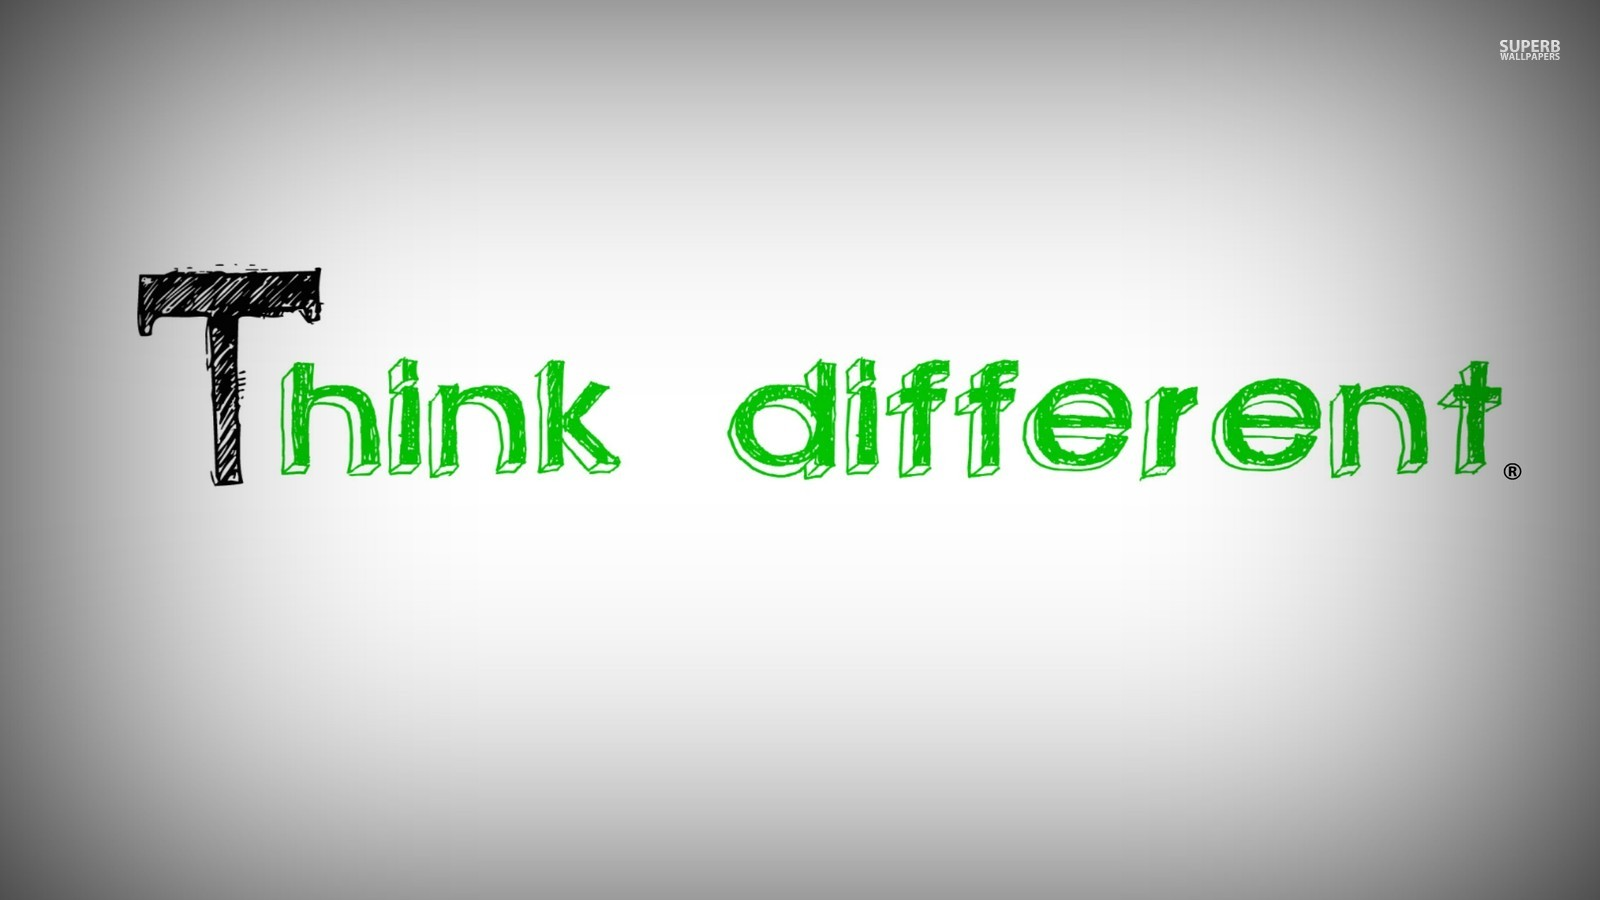 Think Different   Advice Wallpaper 38680224 1600x900